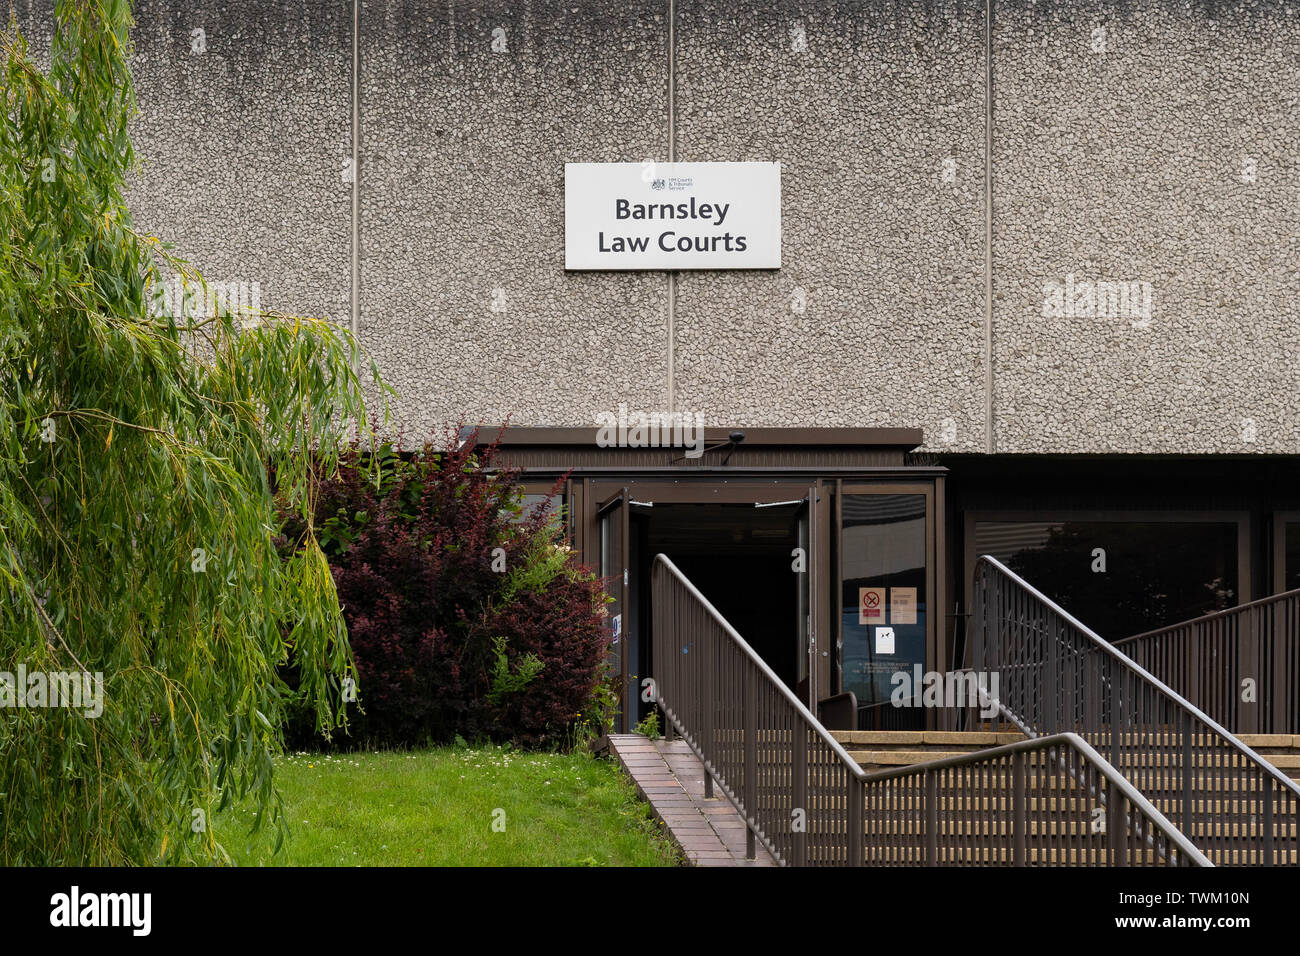 County Court Stock Photos & County Court Stock Images - Alamy